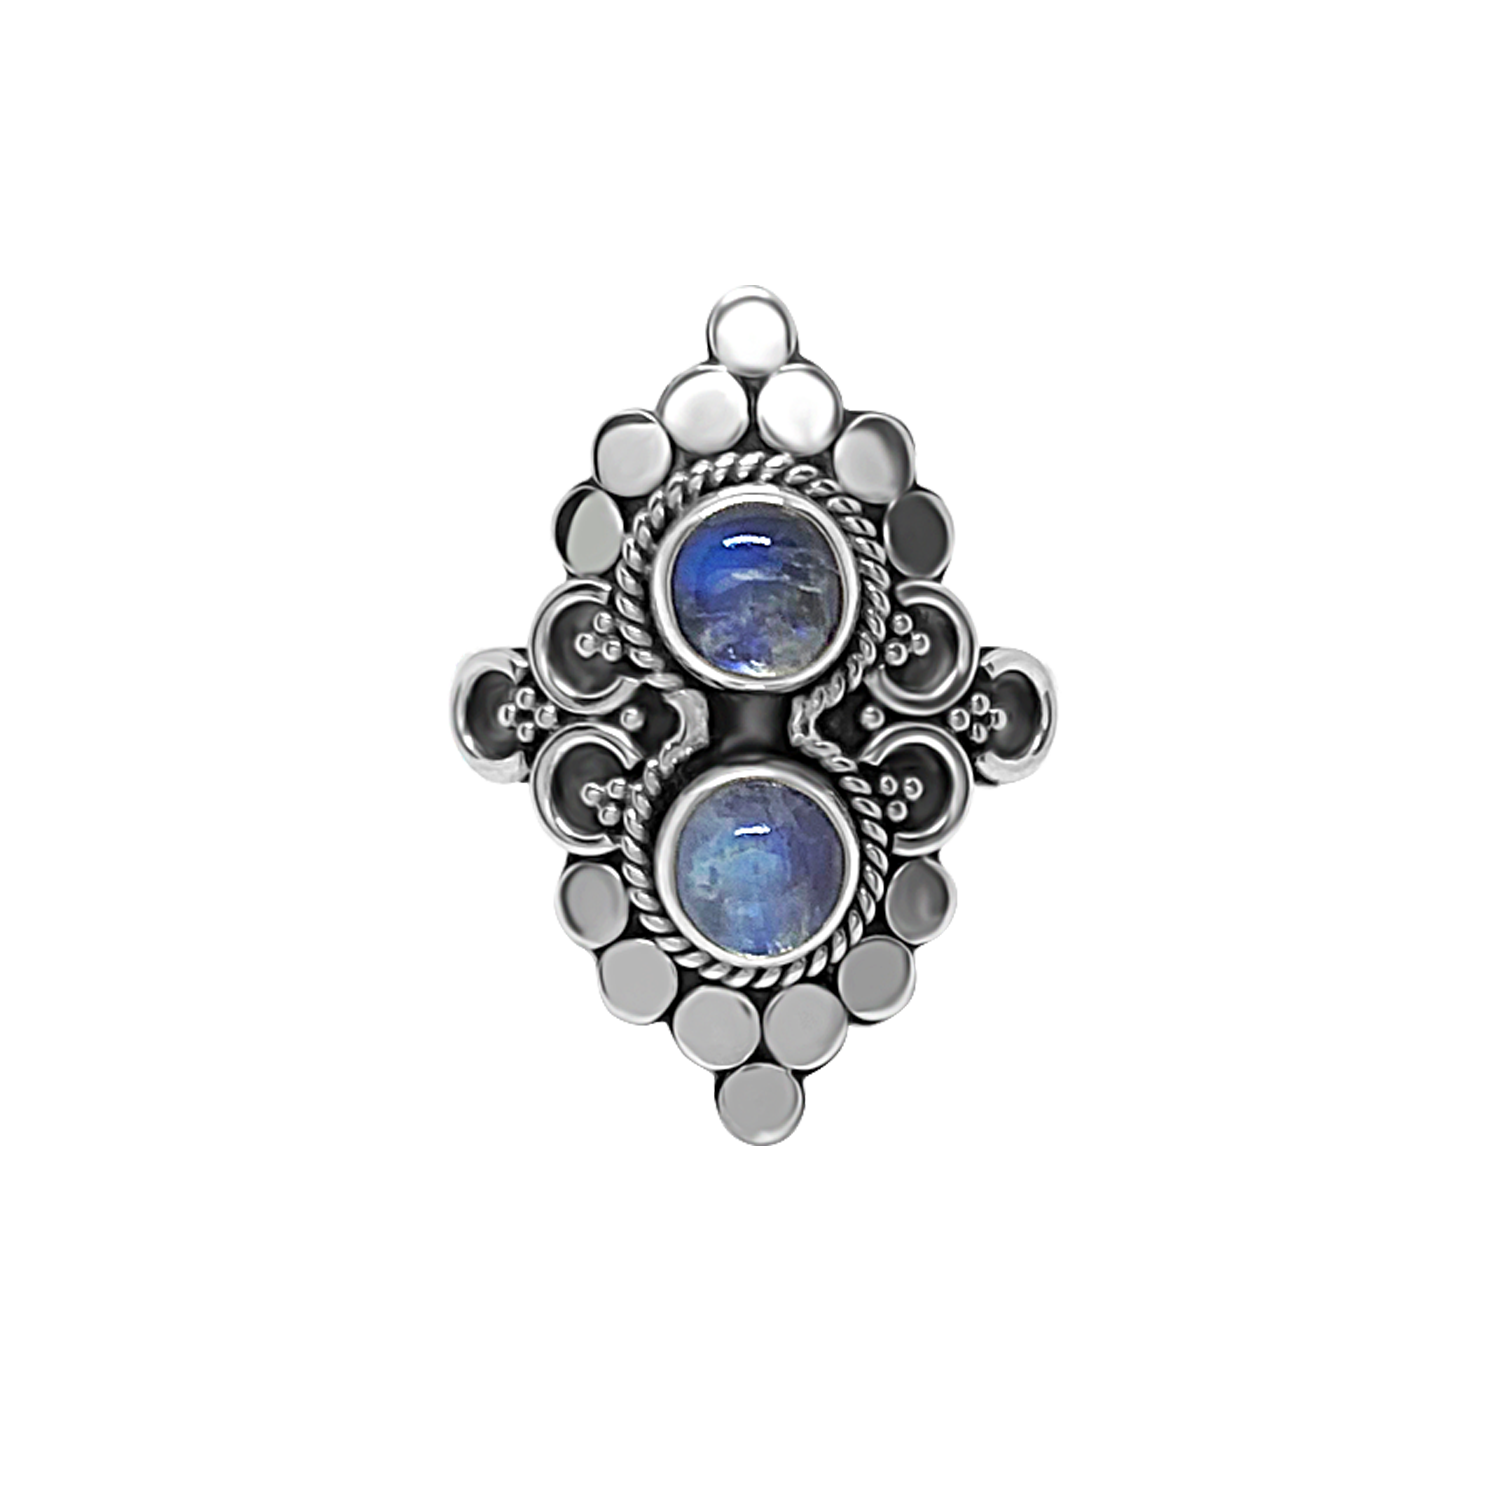 statement style sterling silver ring double moonstones bohemian chic jewelry kemmi collection